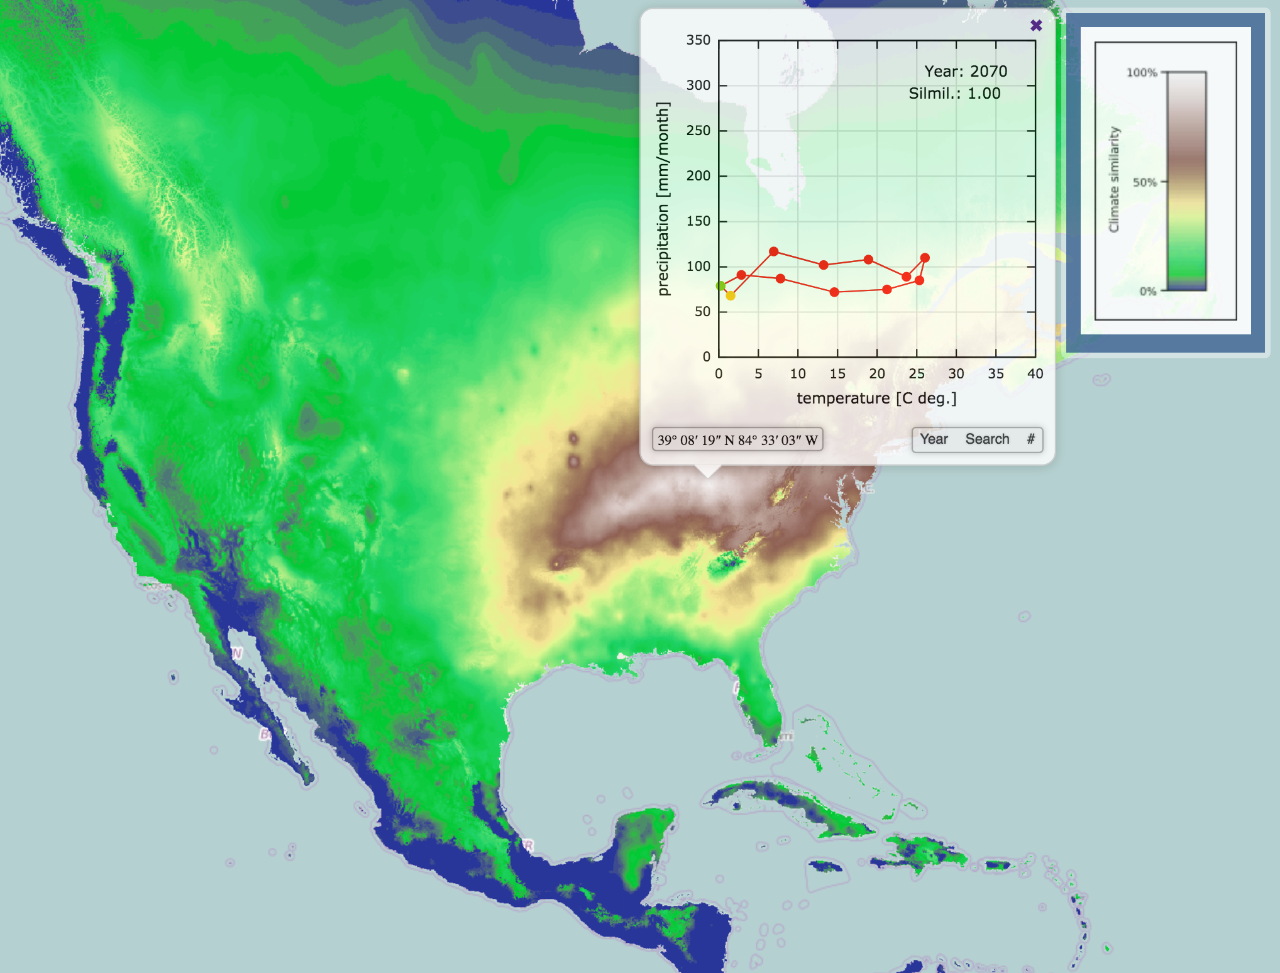 A climatogram of Cincinnati illustrates the average temperature and precipitation in each of the 12 months of the year. The map also predicts the rate of climate change through 2070.